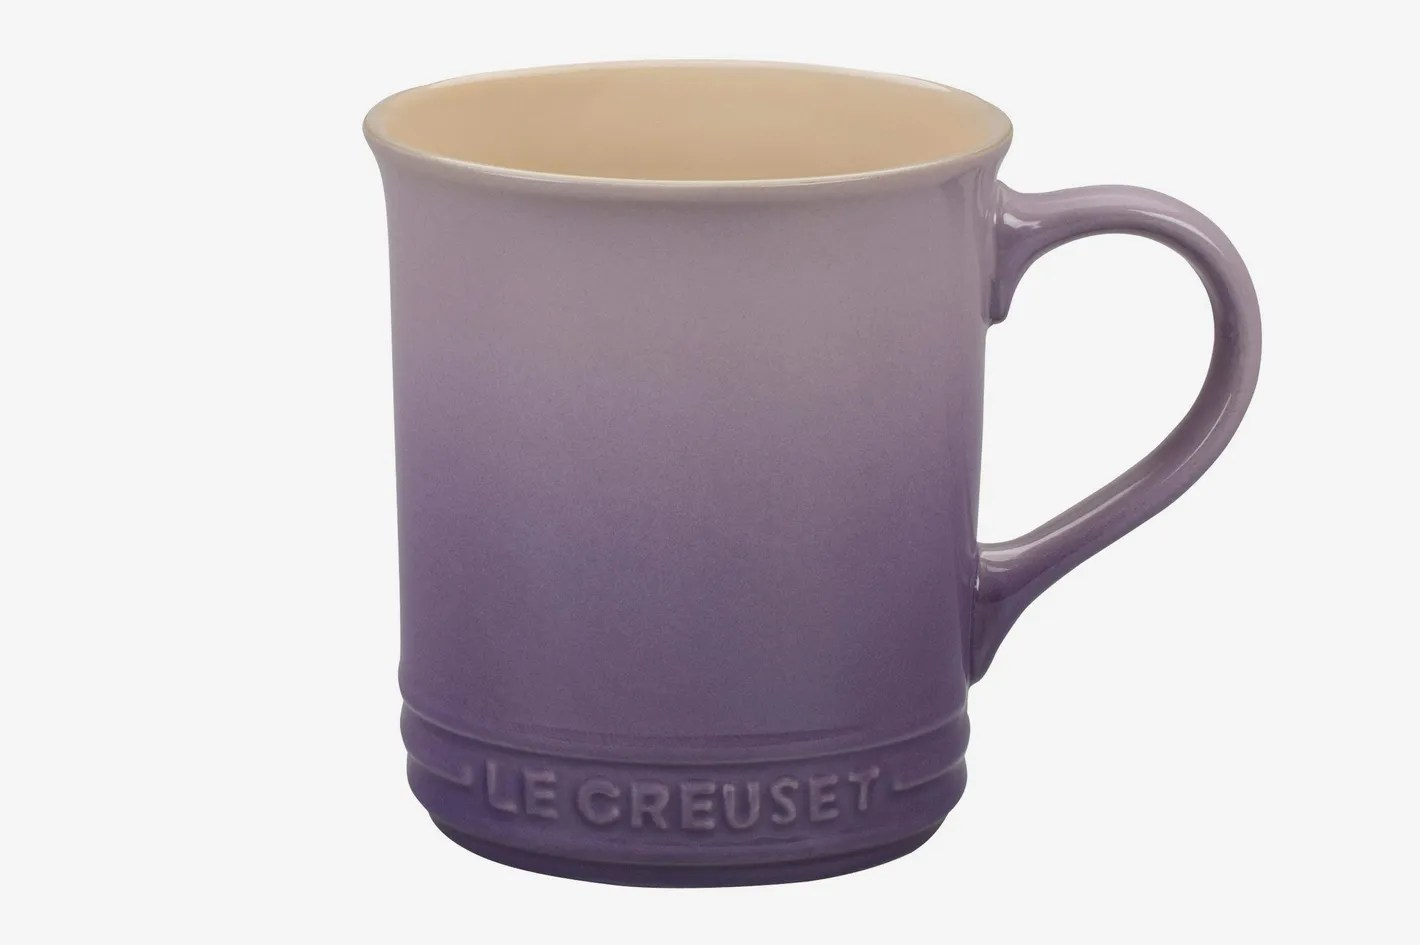 Absorbing Le Creuset Stoneware Mug Le Creuset Cookware Provence On Sale At Nordstrom 2018 Le Creuset French Press Assembly Le Creuset French Press Marseille houzz-03 Le Creuset French Press